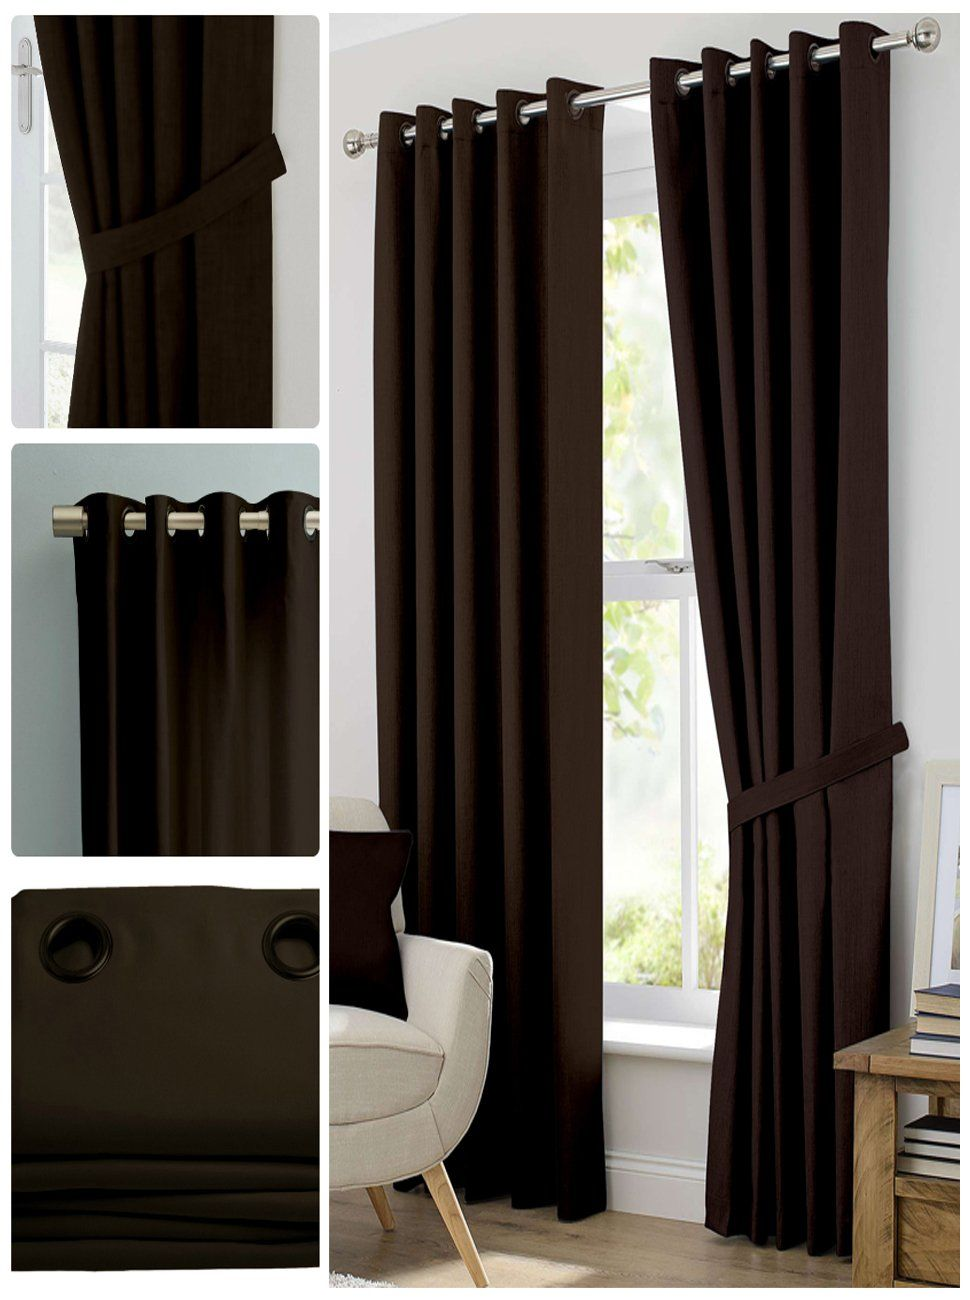 Blackout Room Darkening Curtains Window Panel Drapes Dark Brown Color 2 Panel